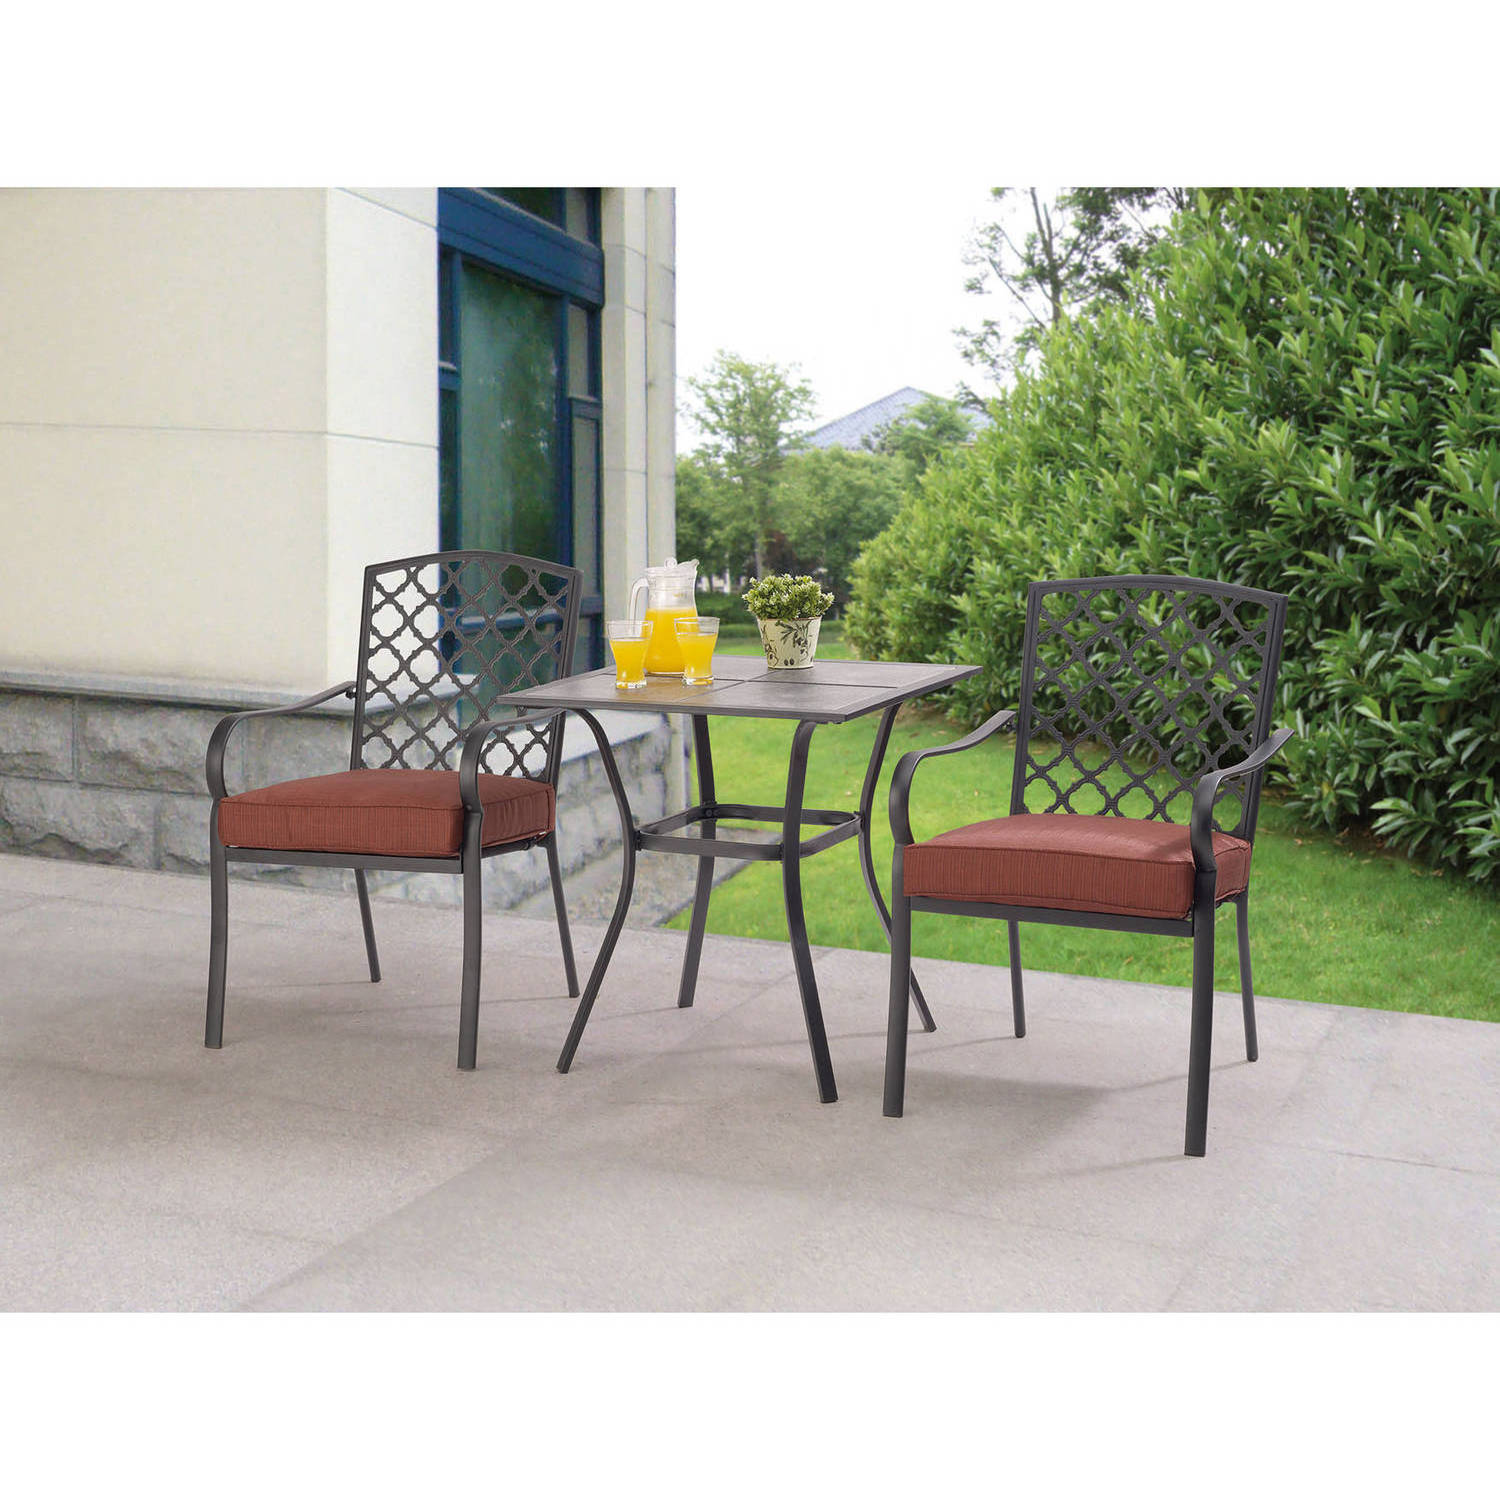 Mainstays Grayson Court 3-Piece Bistro Set